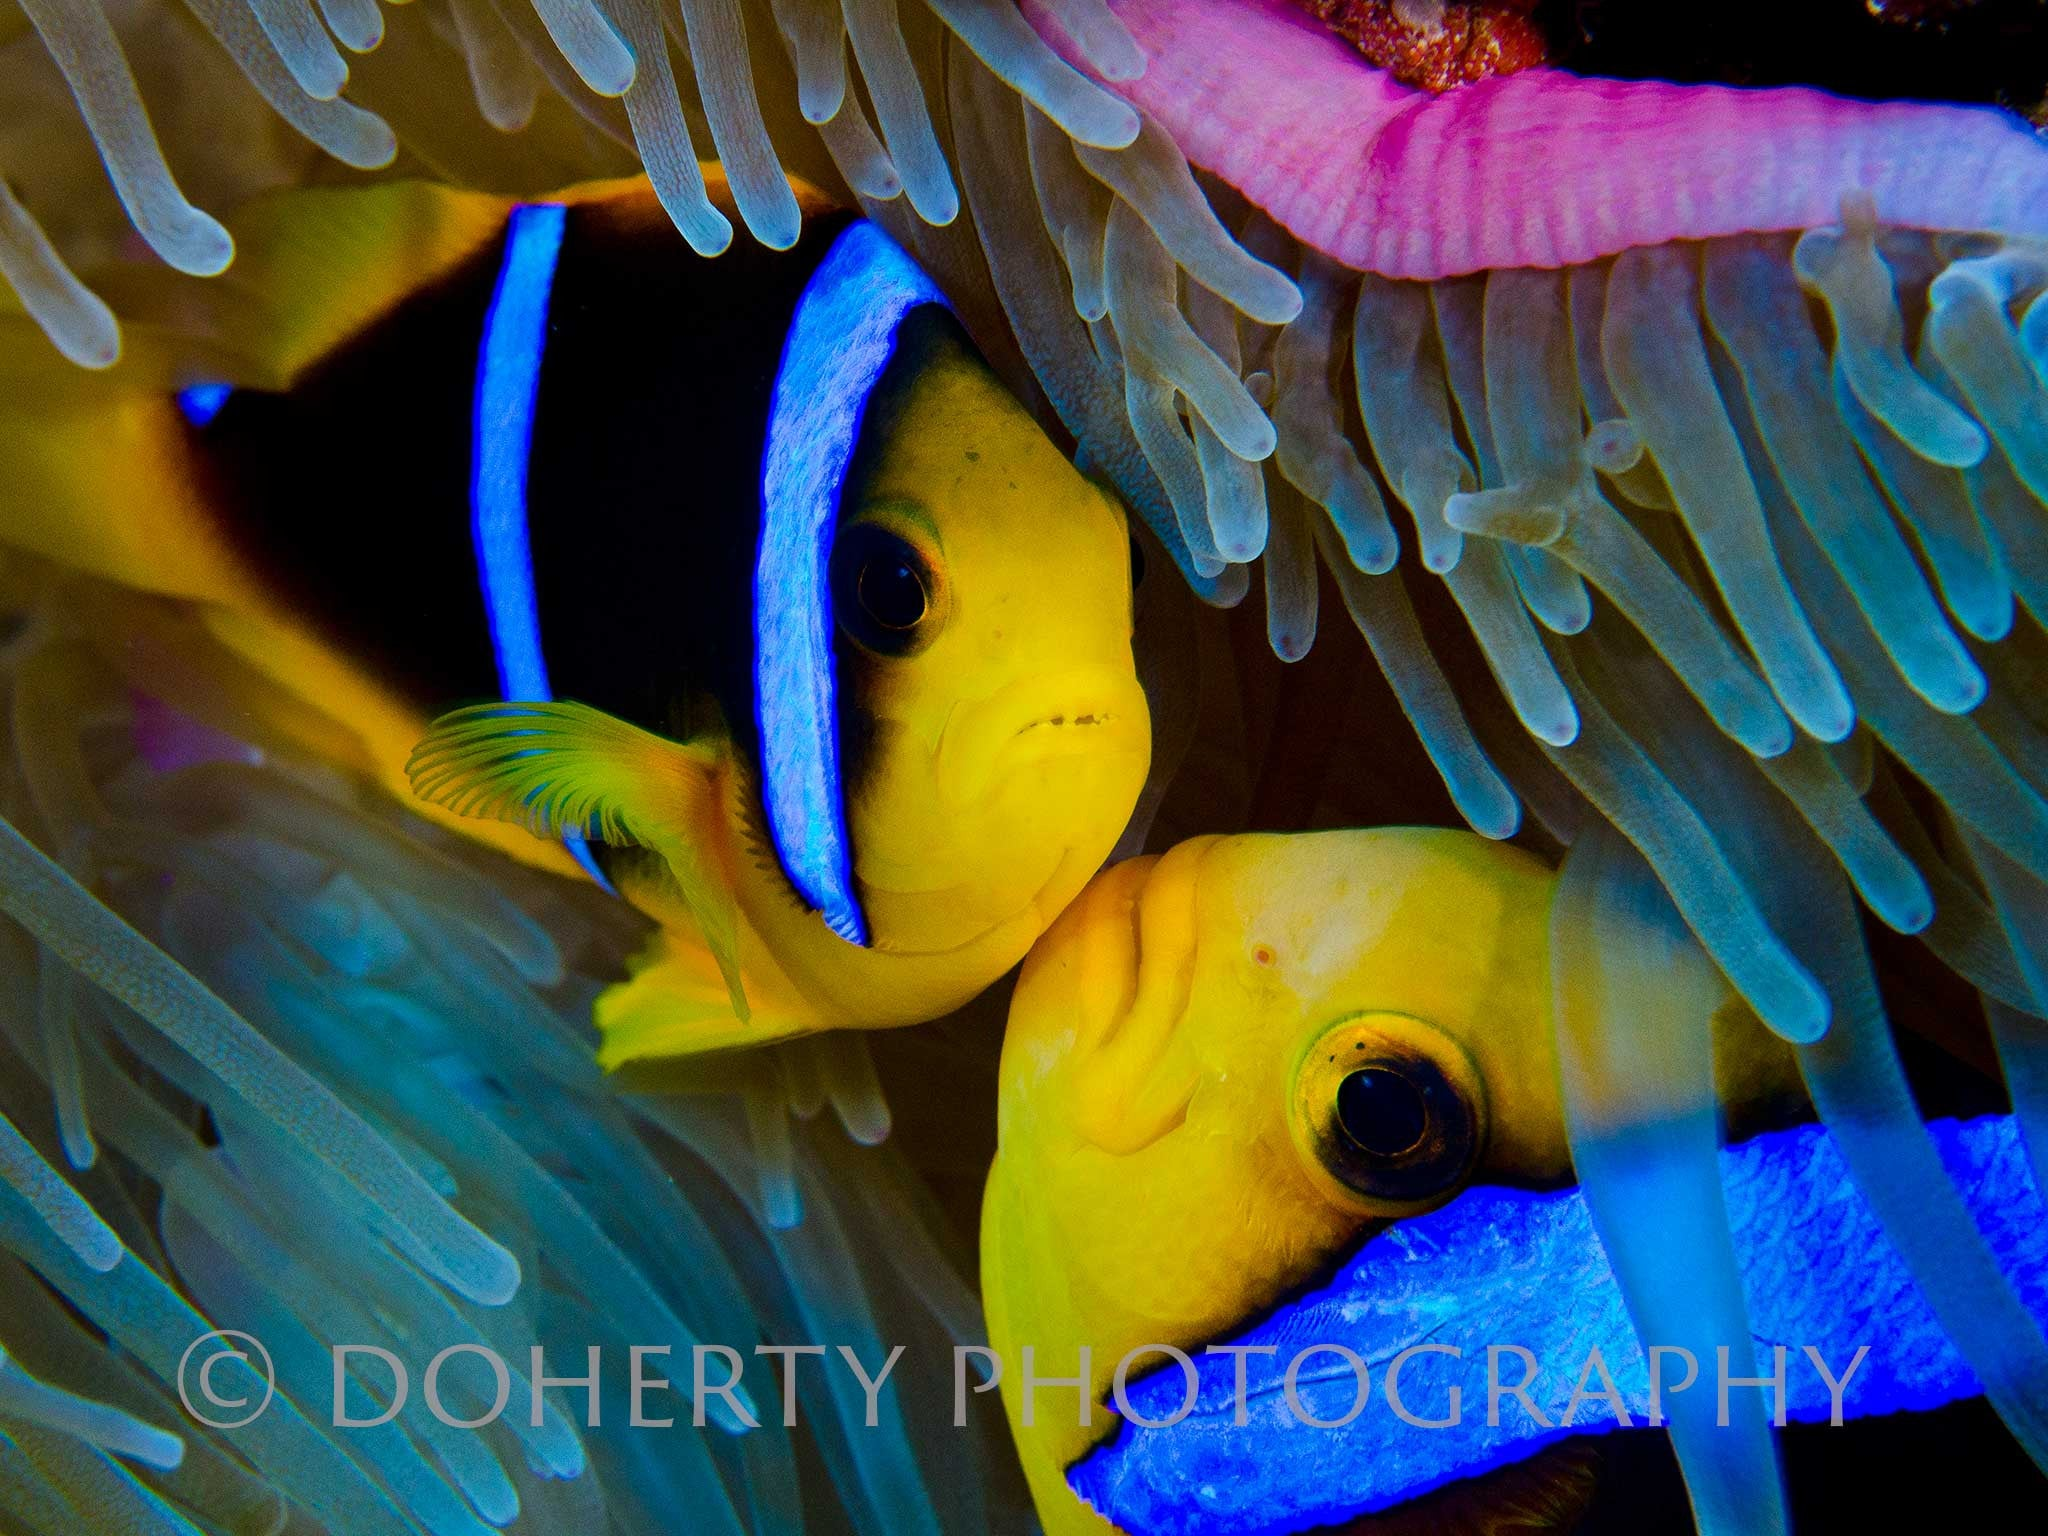 Fish Lips - Doherty Photography